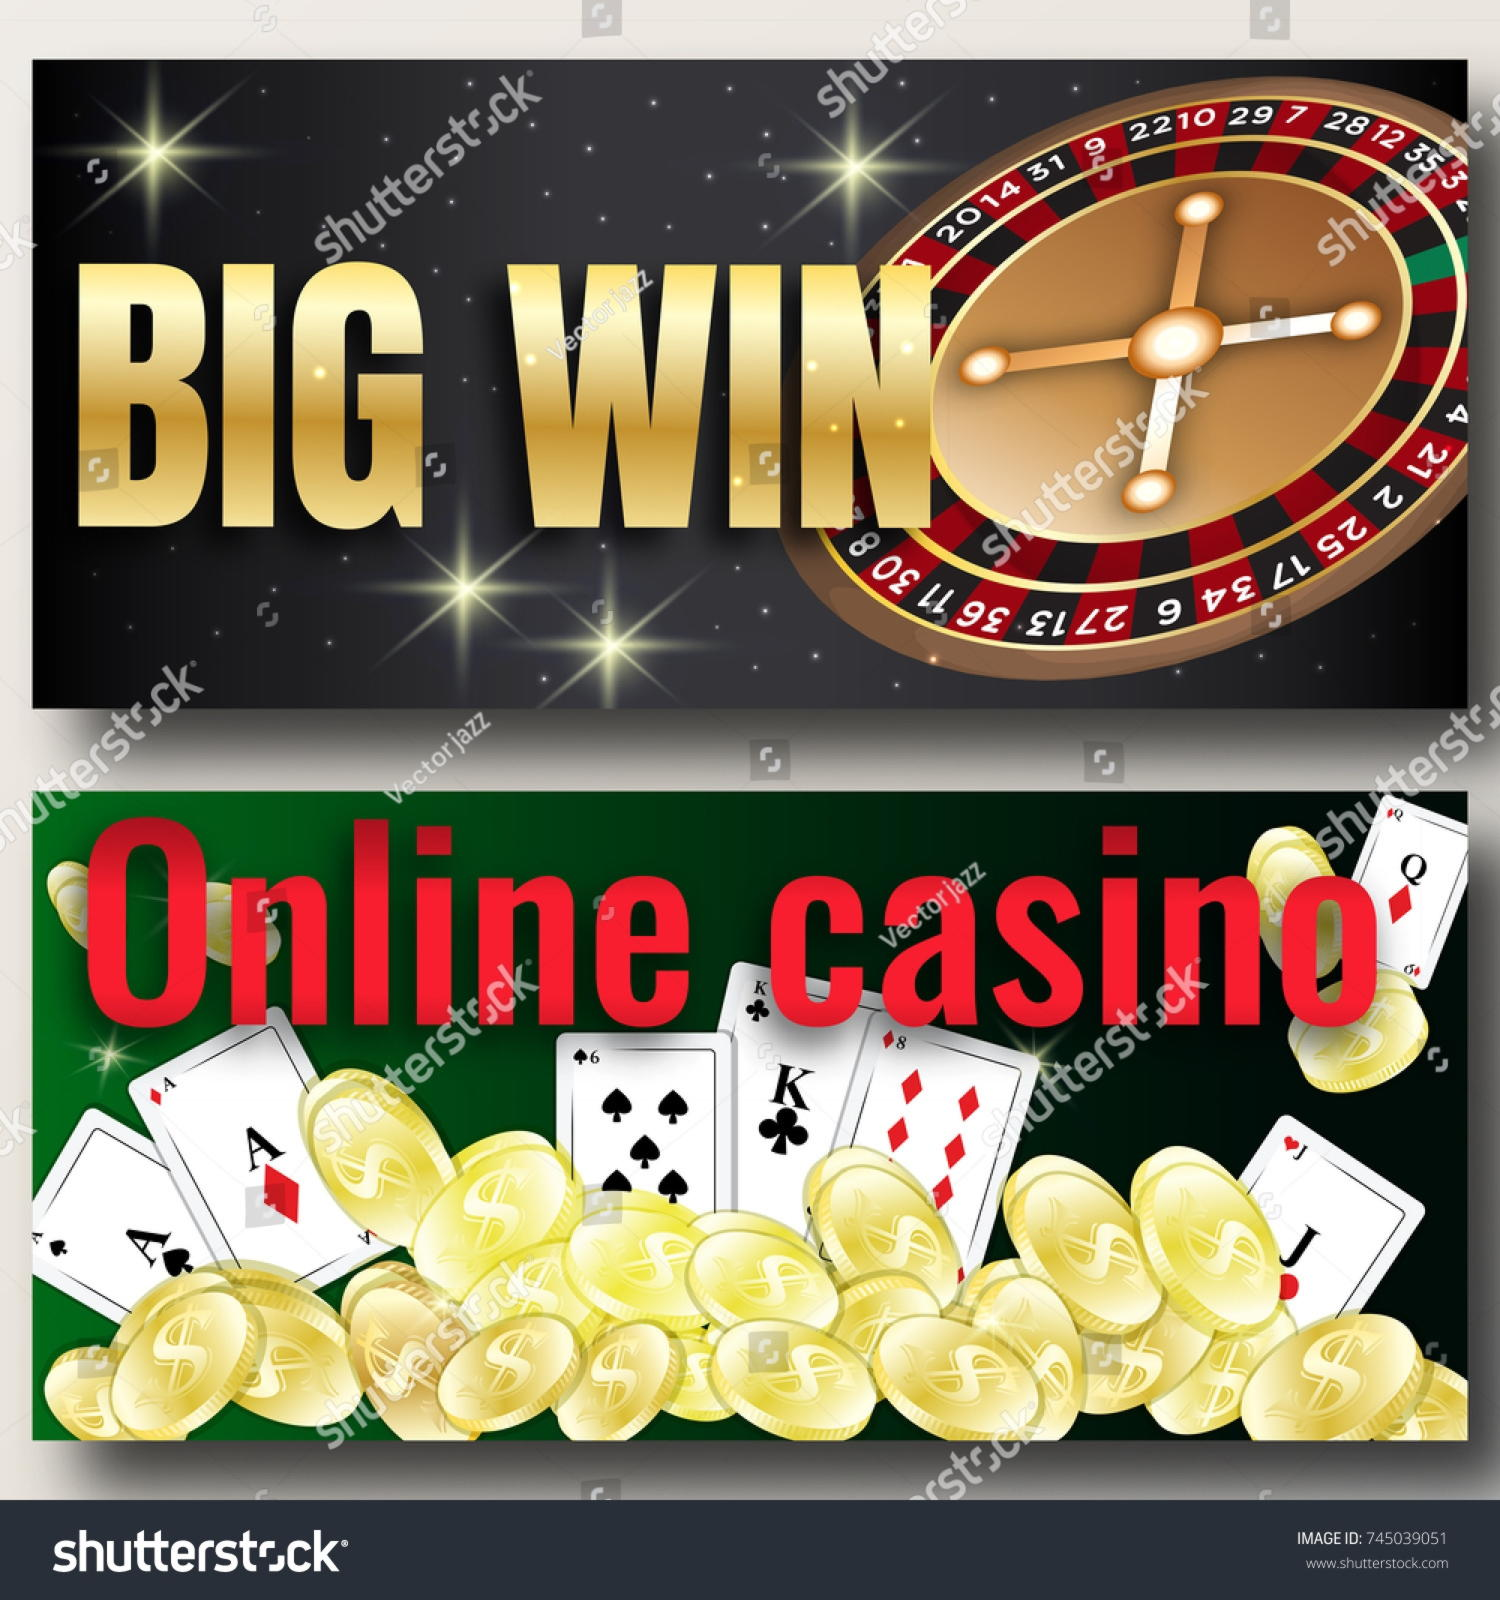 $895 Casino Tournament at Spin Palace Casino